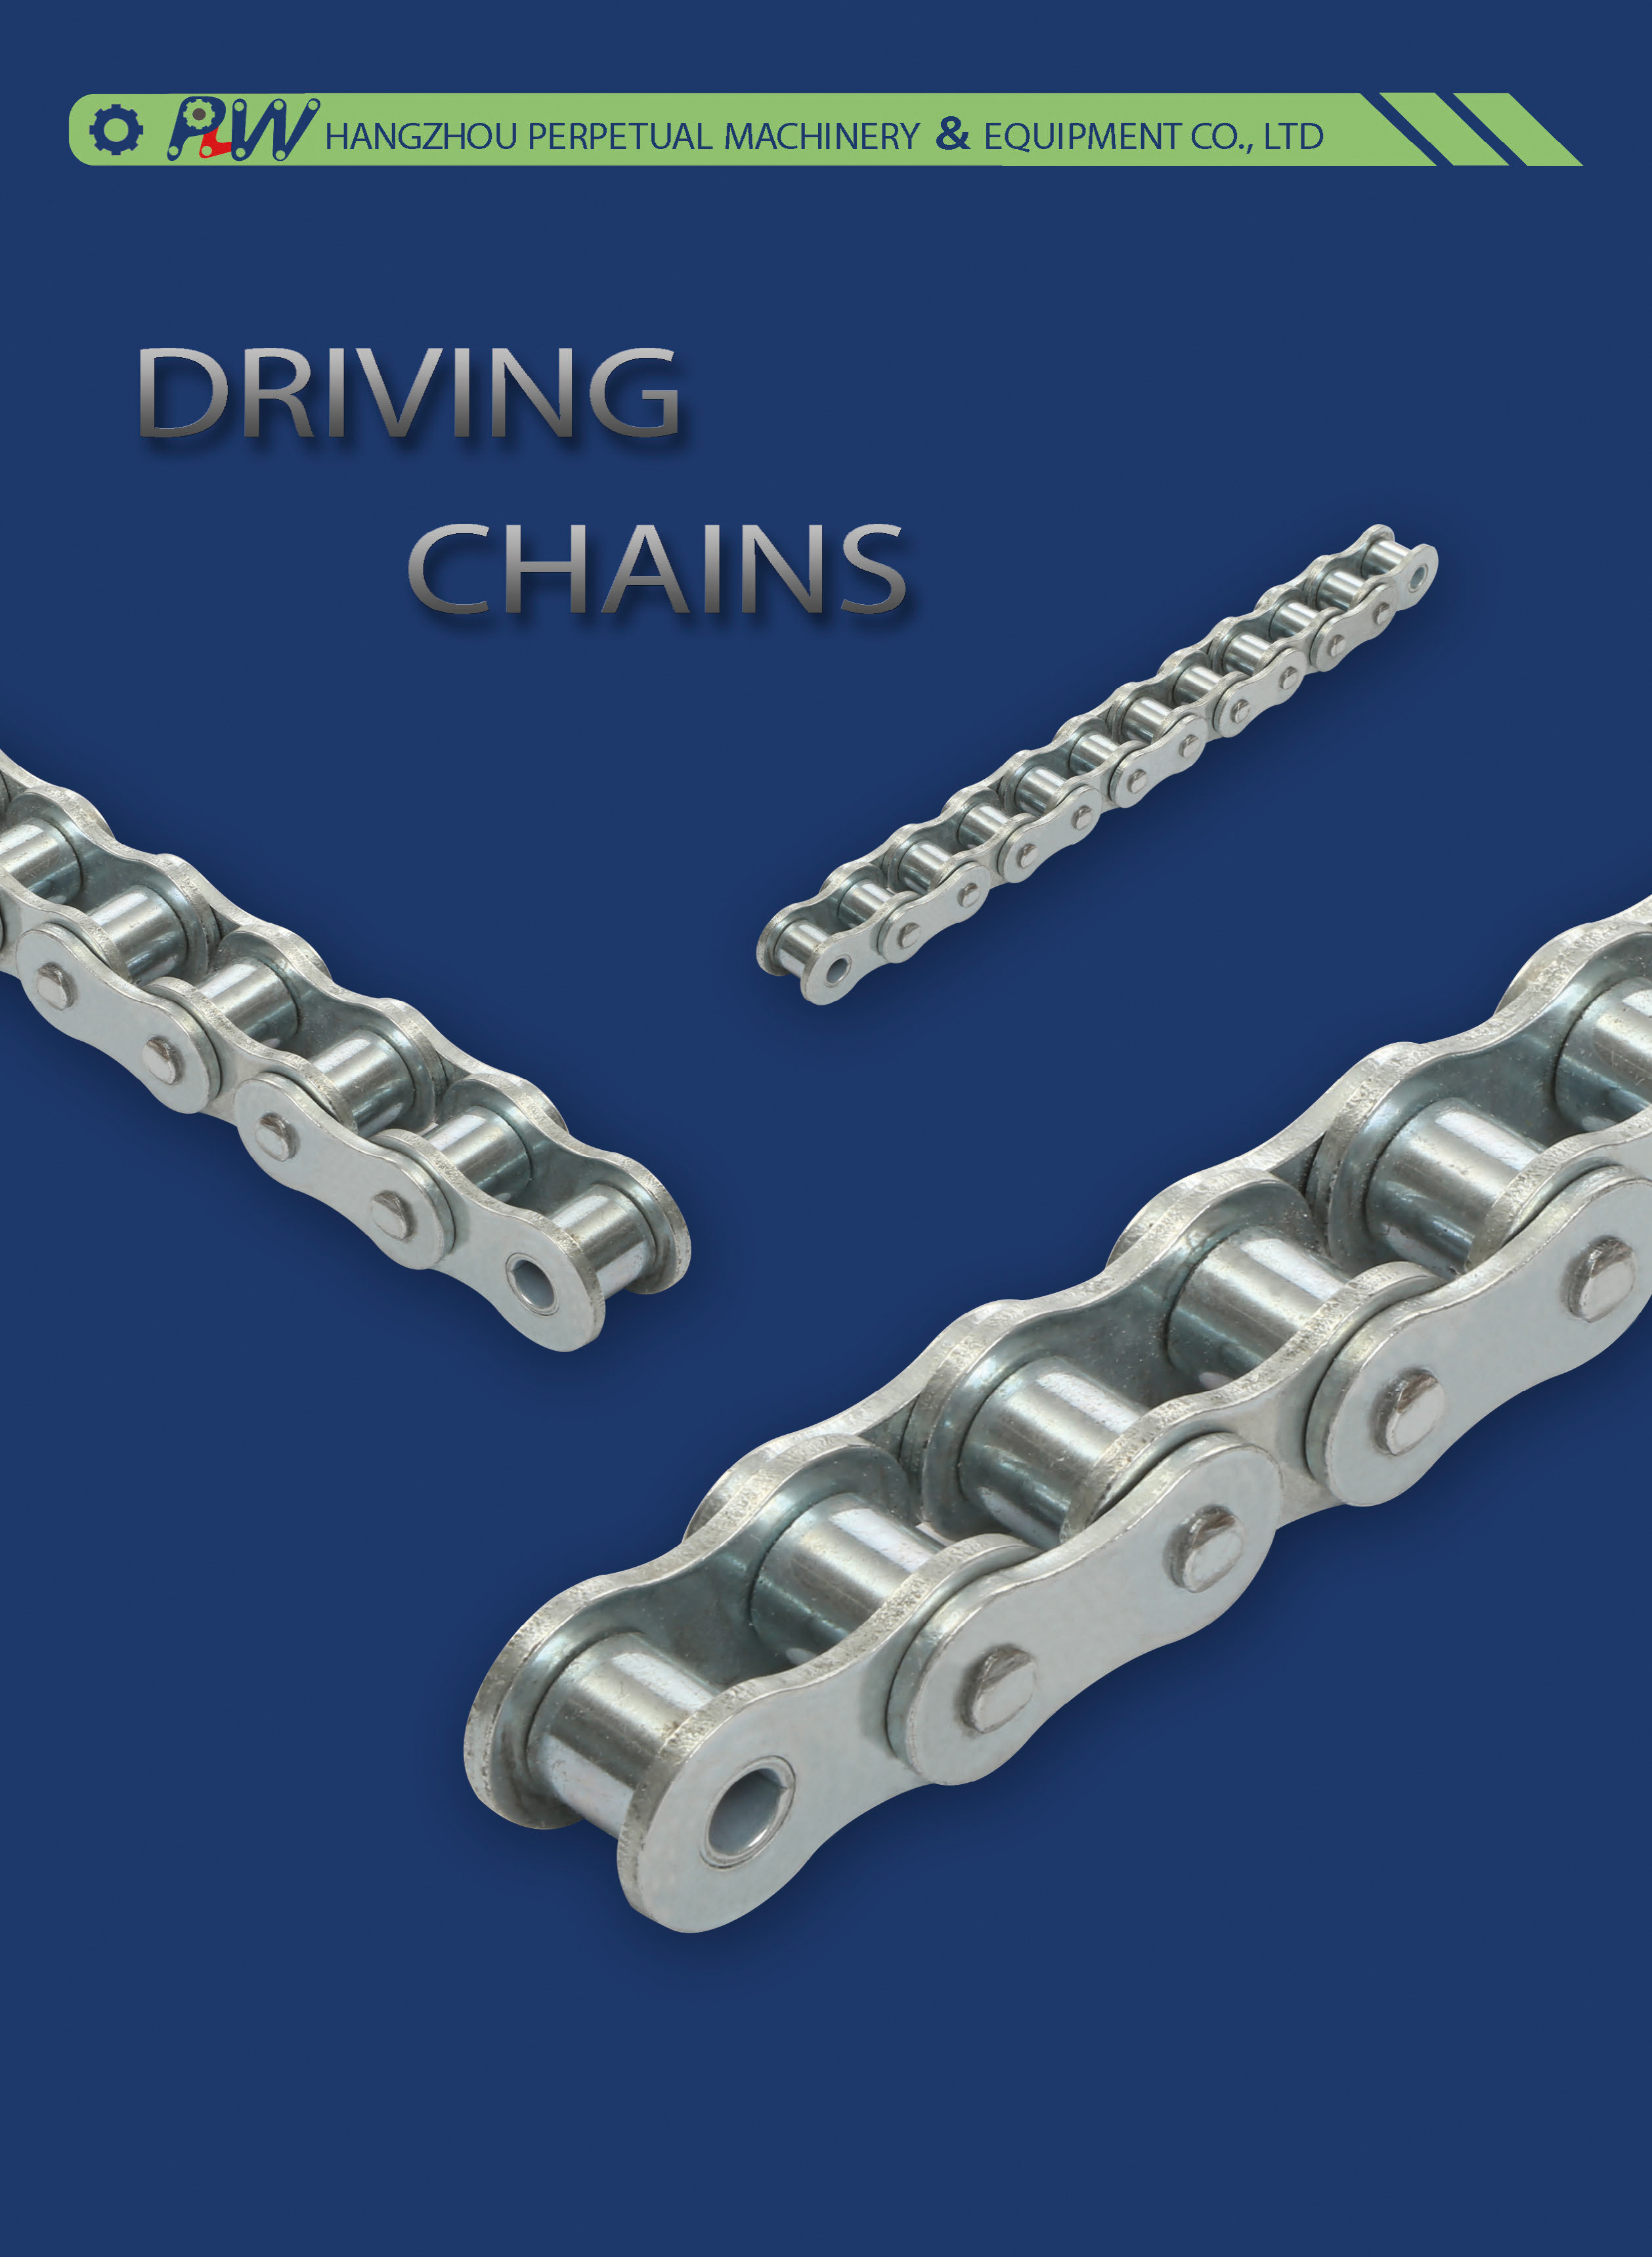 DRIVING CHAINS 11-22